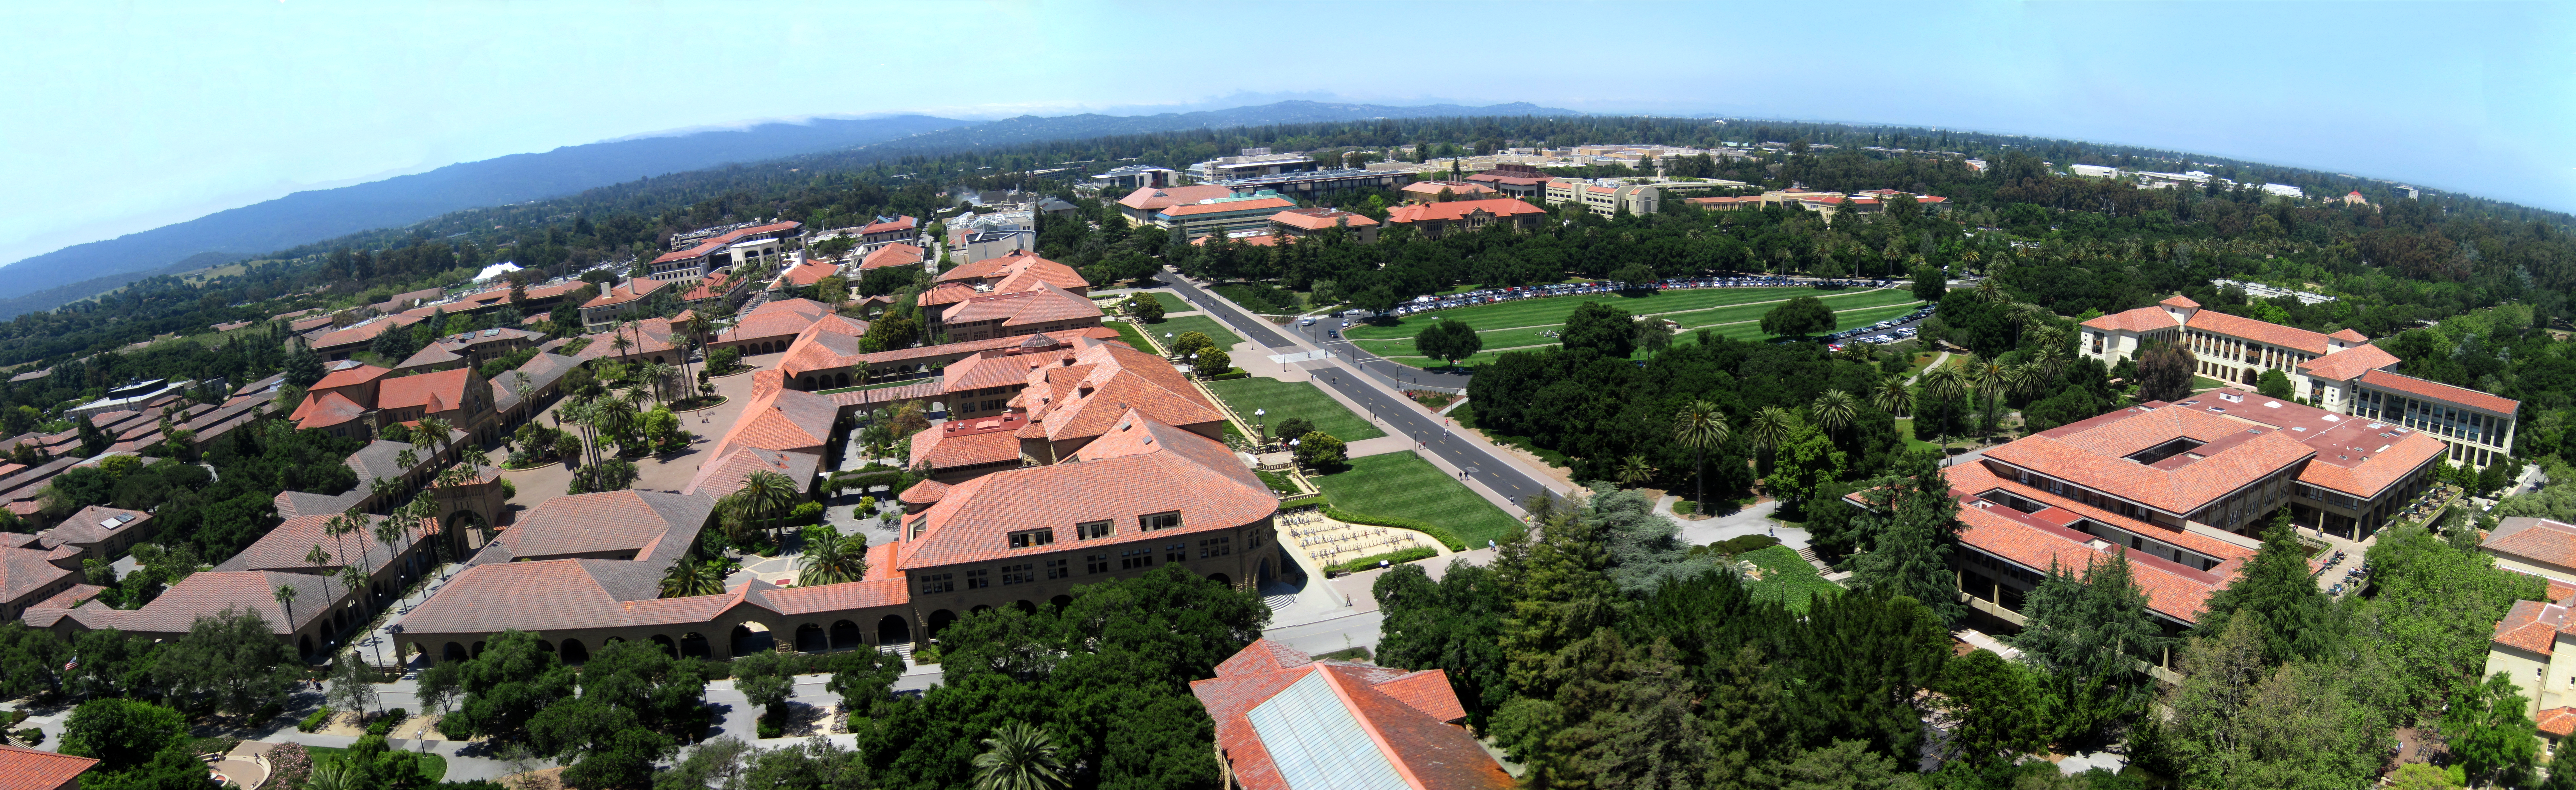 Am I a good candidate for Stanford University?